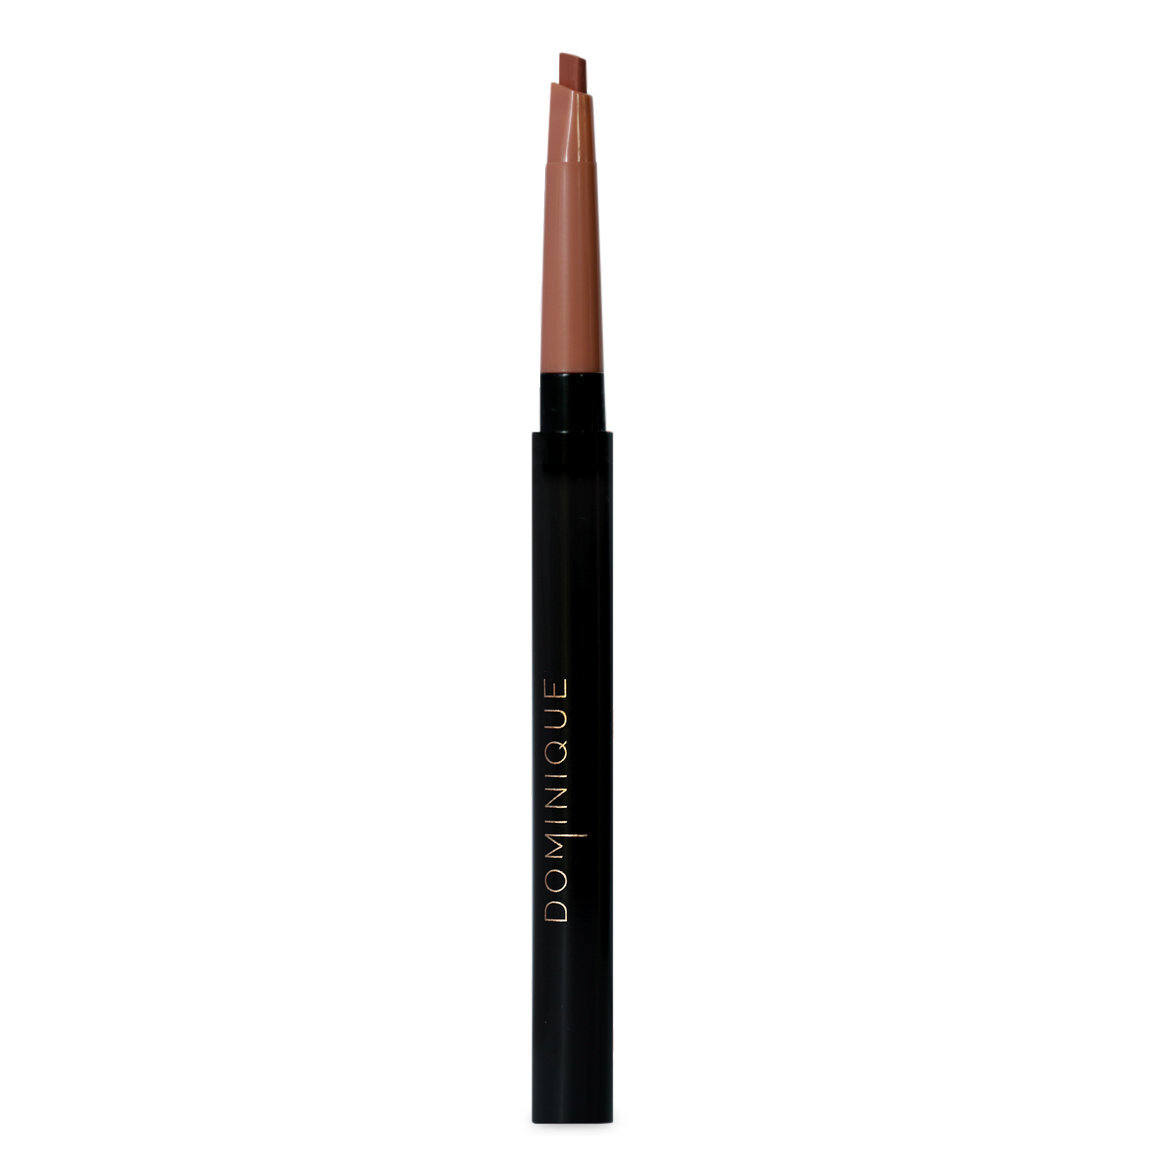 Dominique Cosmetics Creamy Fill & Define Lip Liner Brown Sugar alternative view 1.